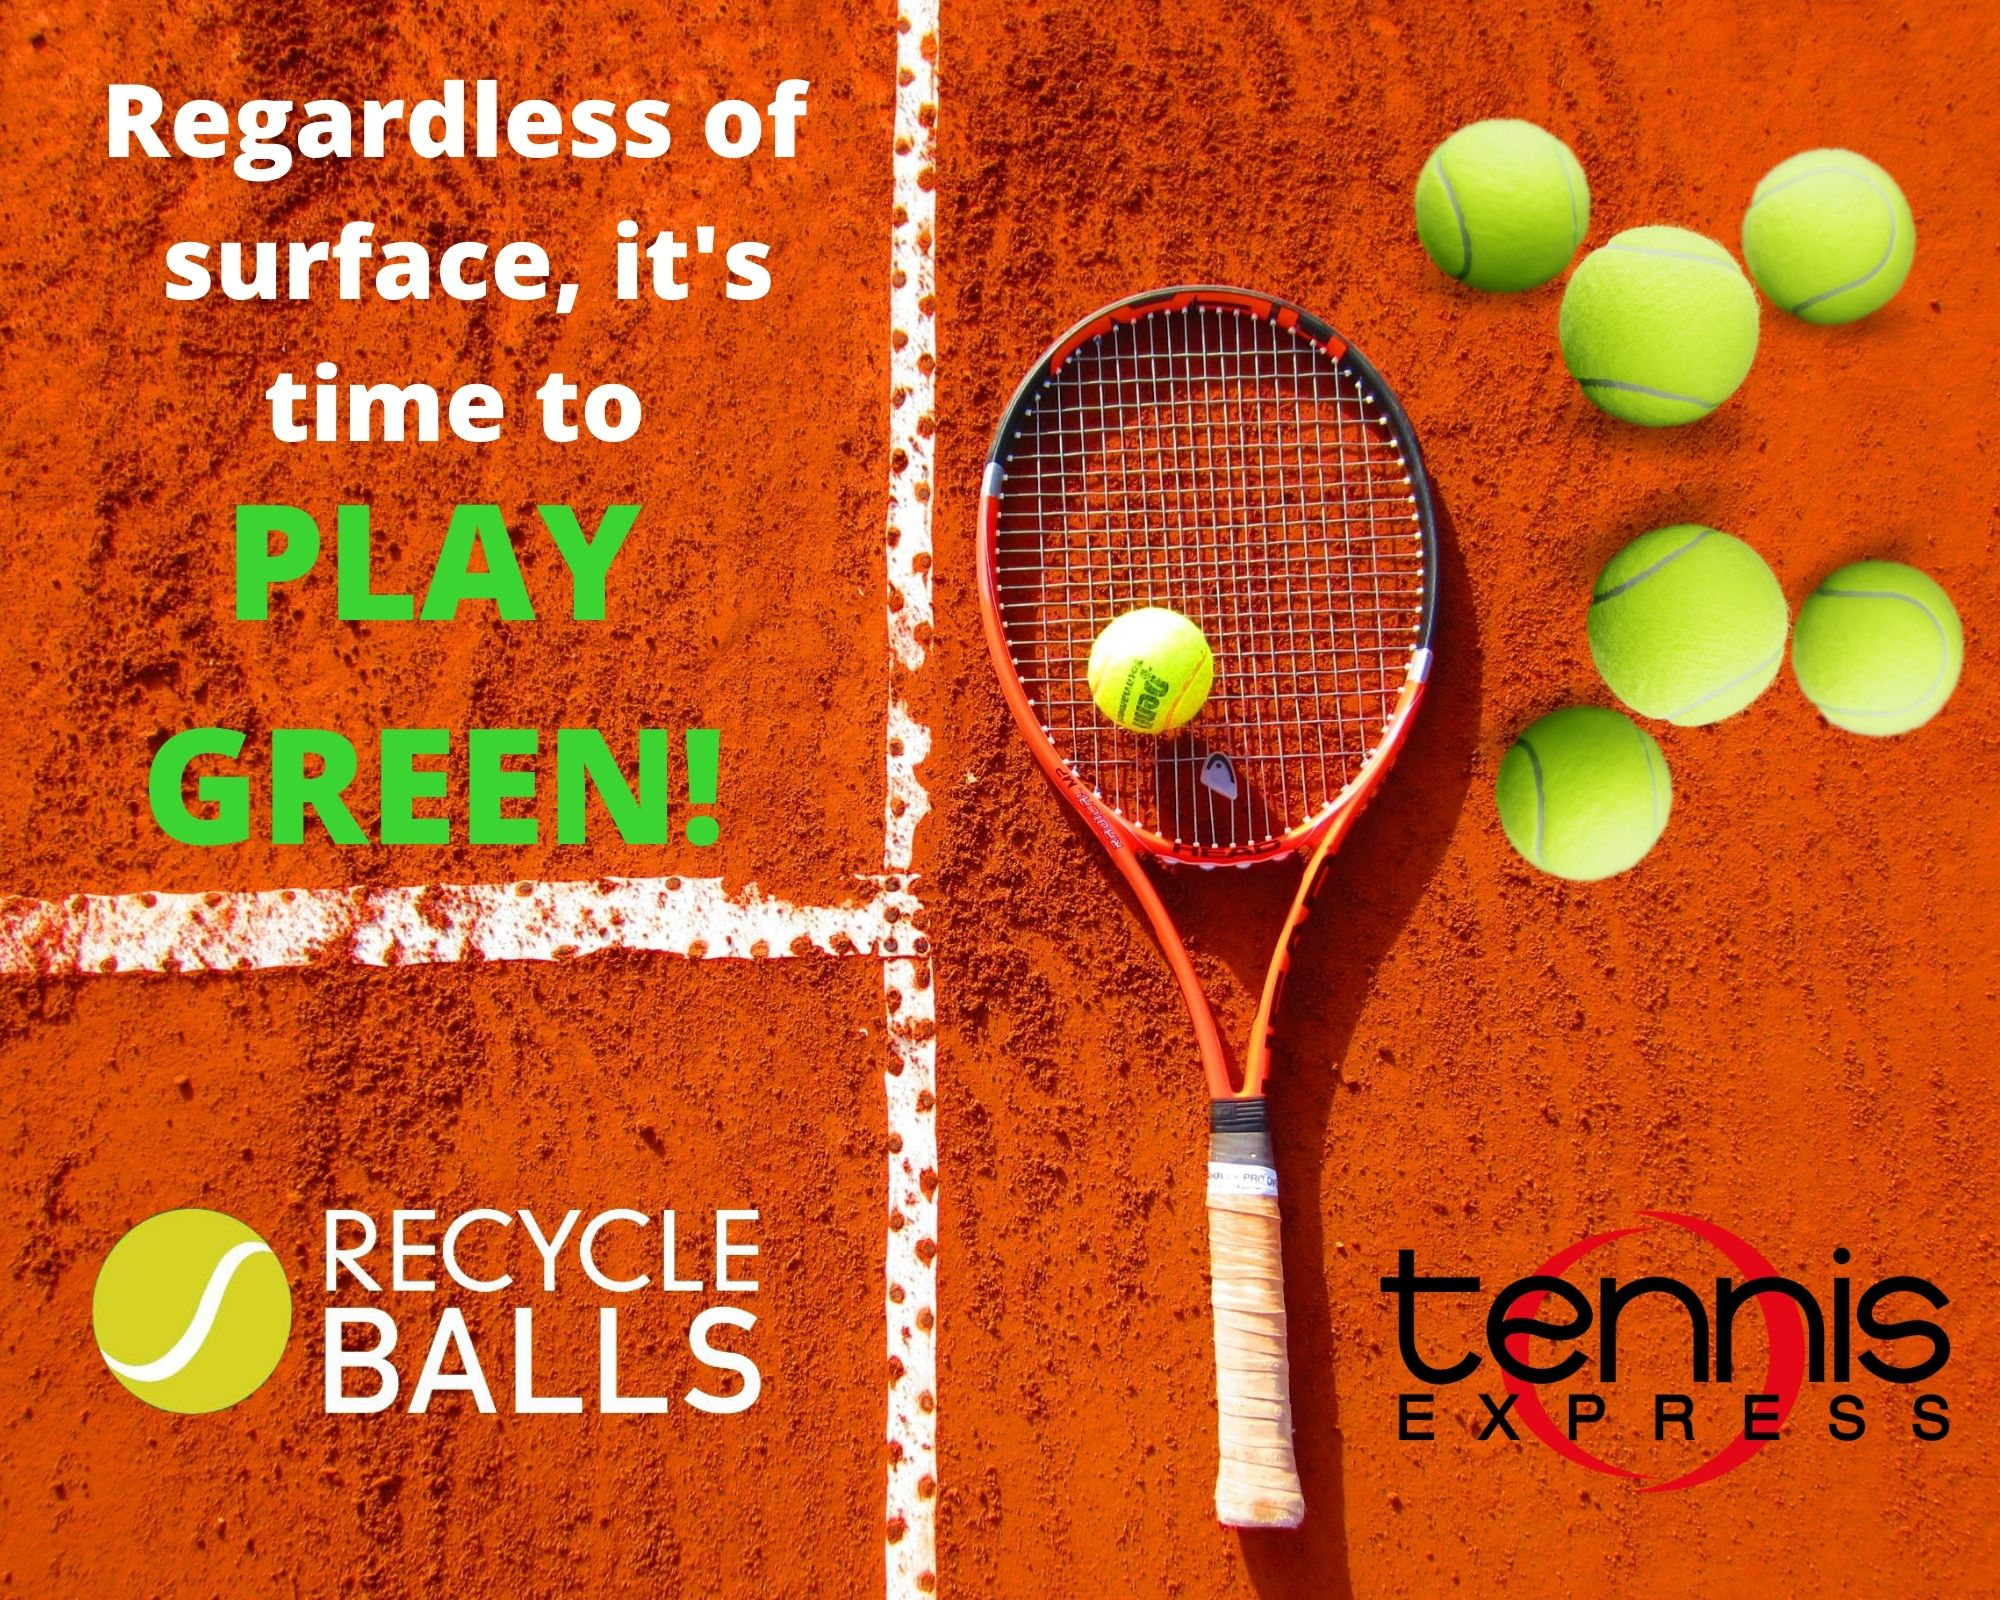 Tennis Express Partners with RecycleBalls.org and Encourages Players to Go Green